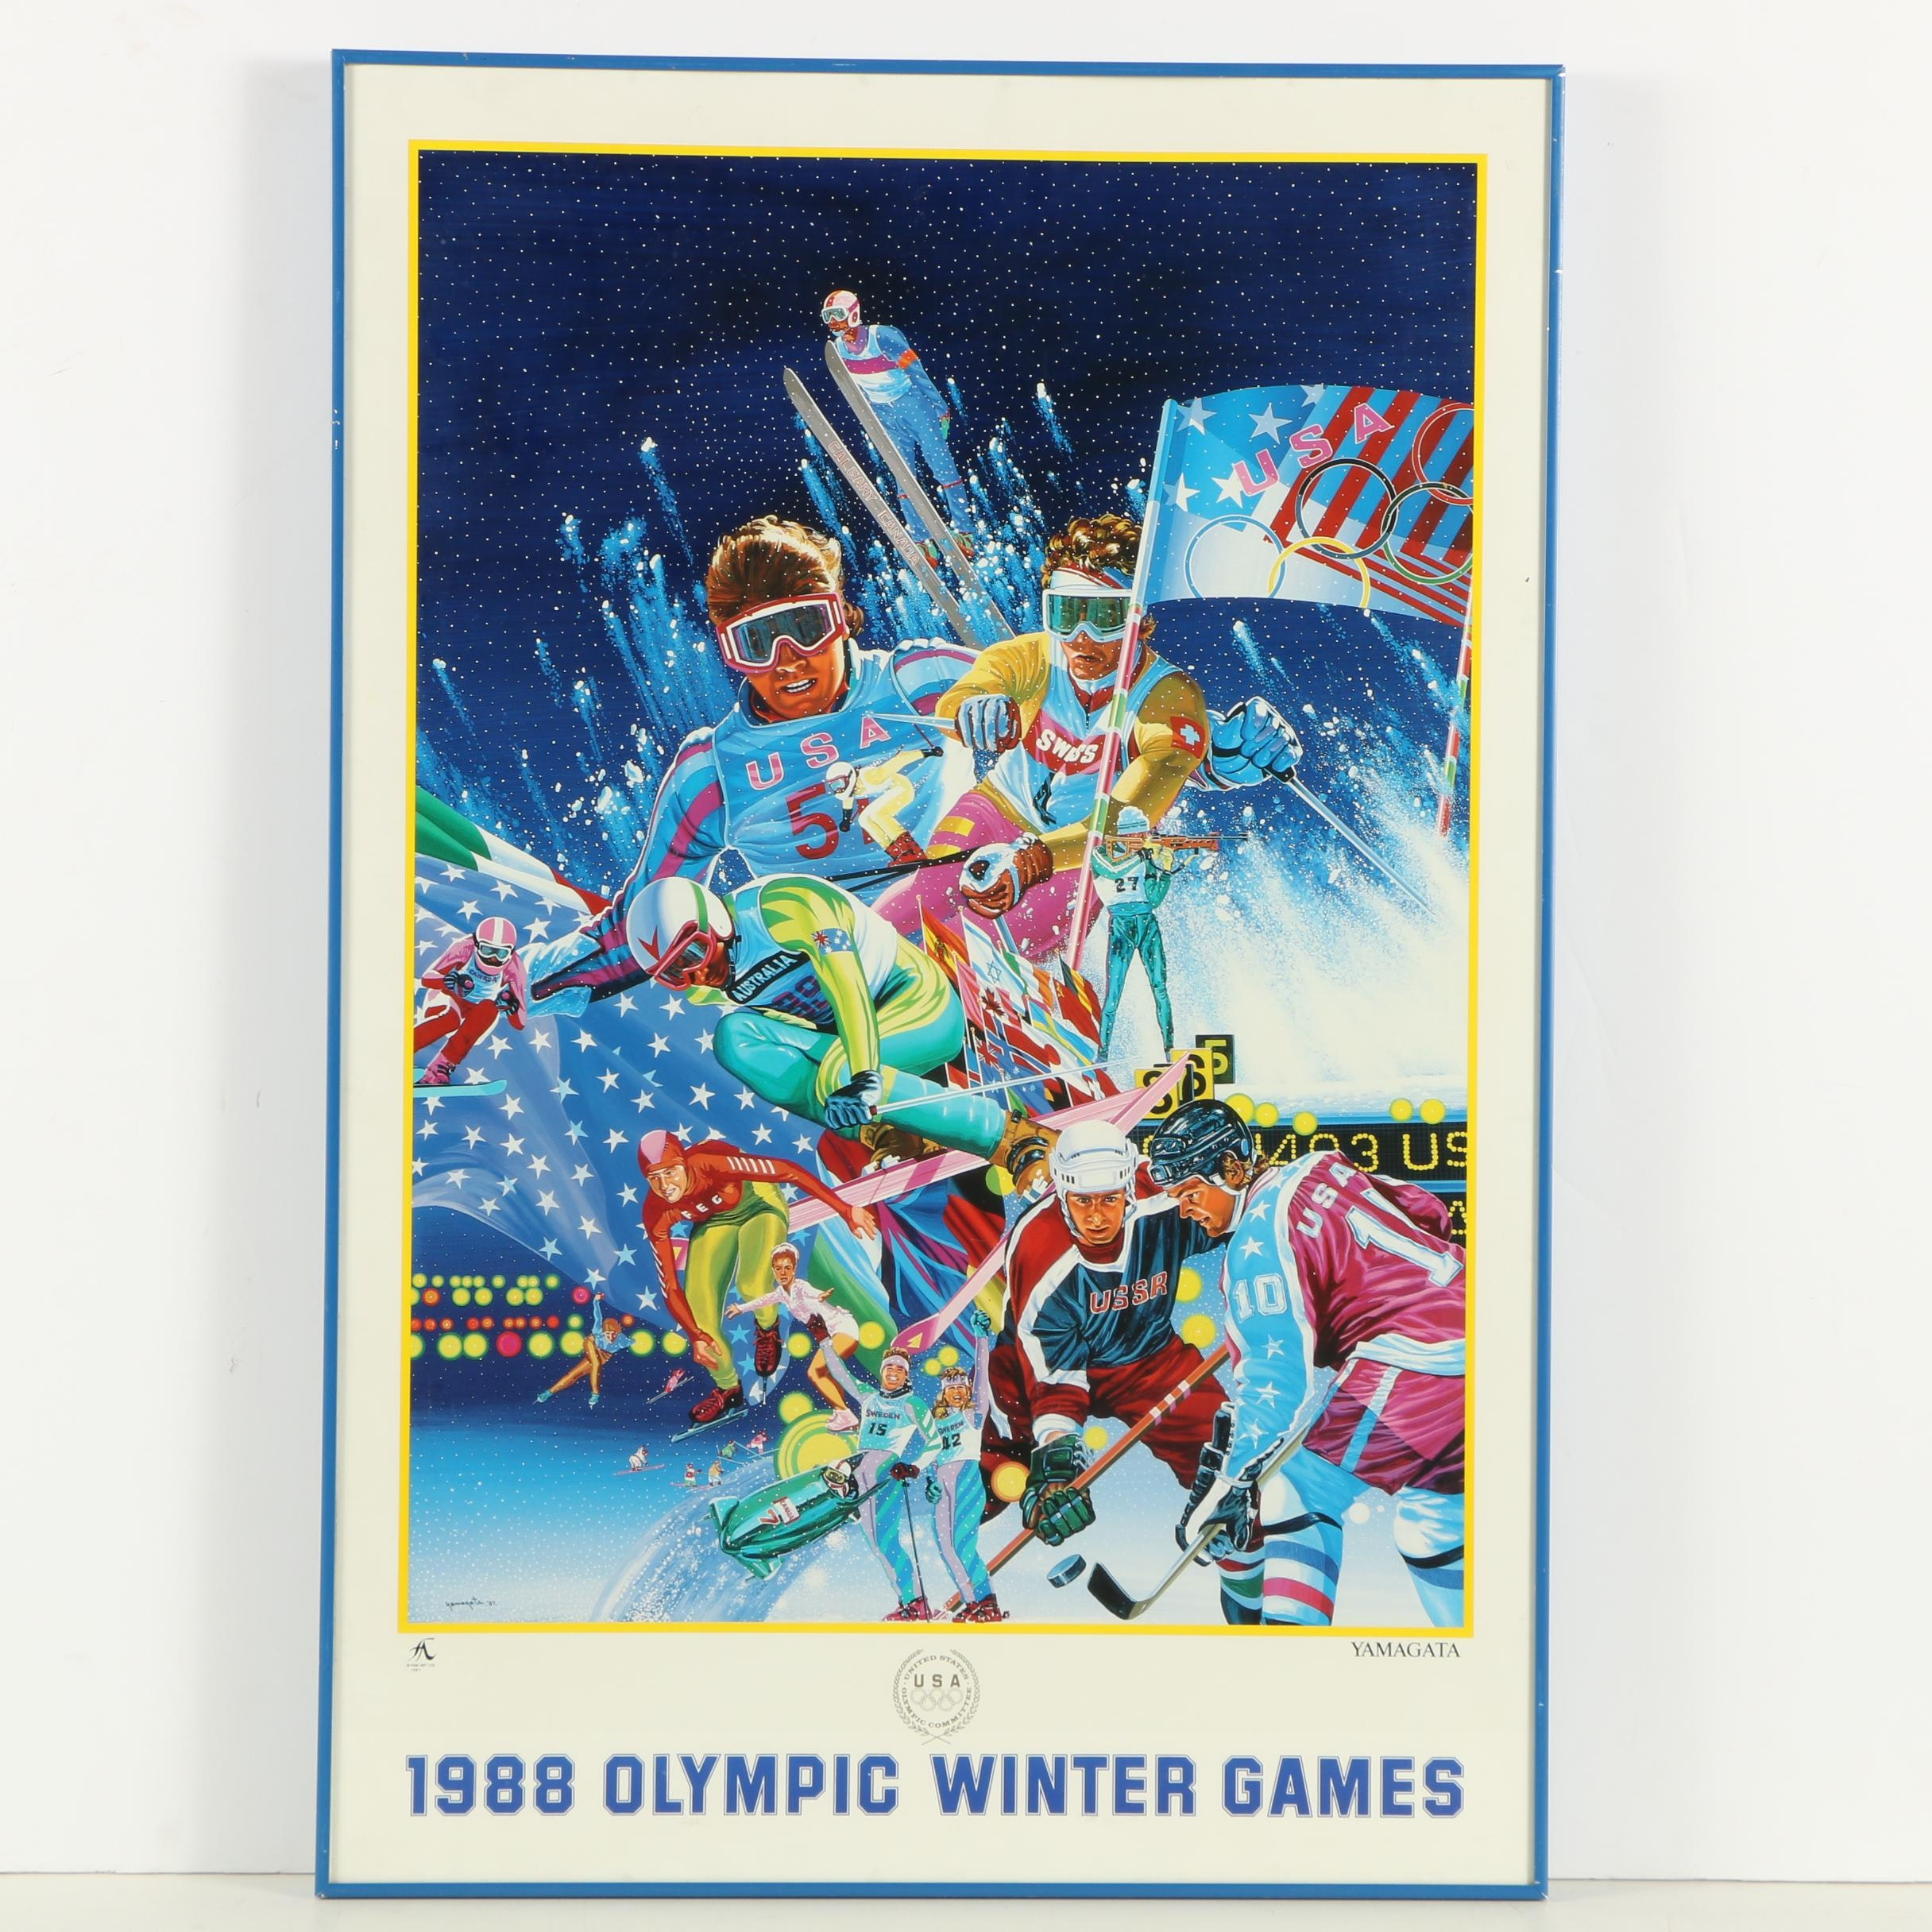 1988 Olympic Winter Games Promotional Offset Lithograph after Hiro Yamagata